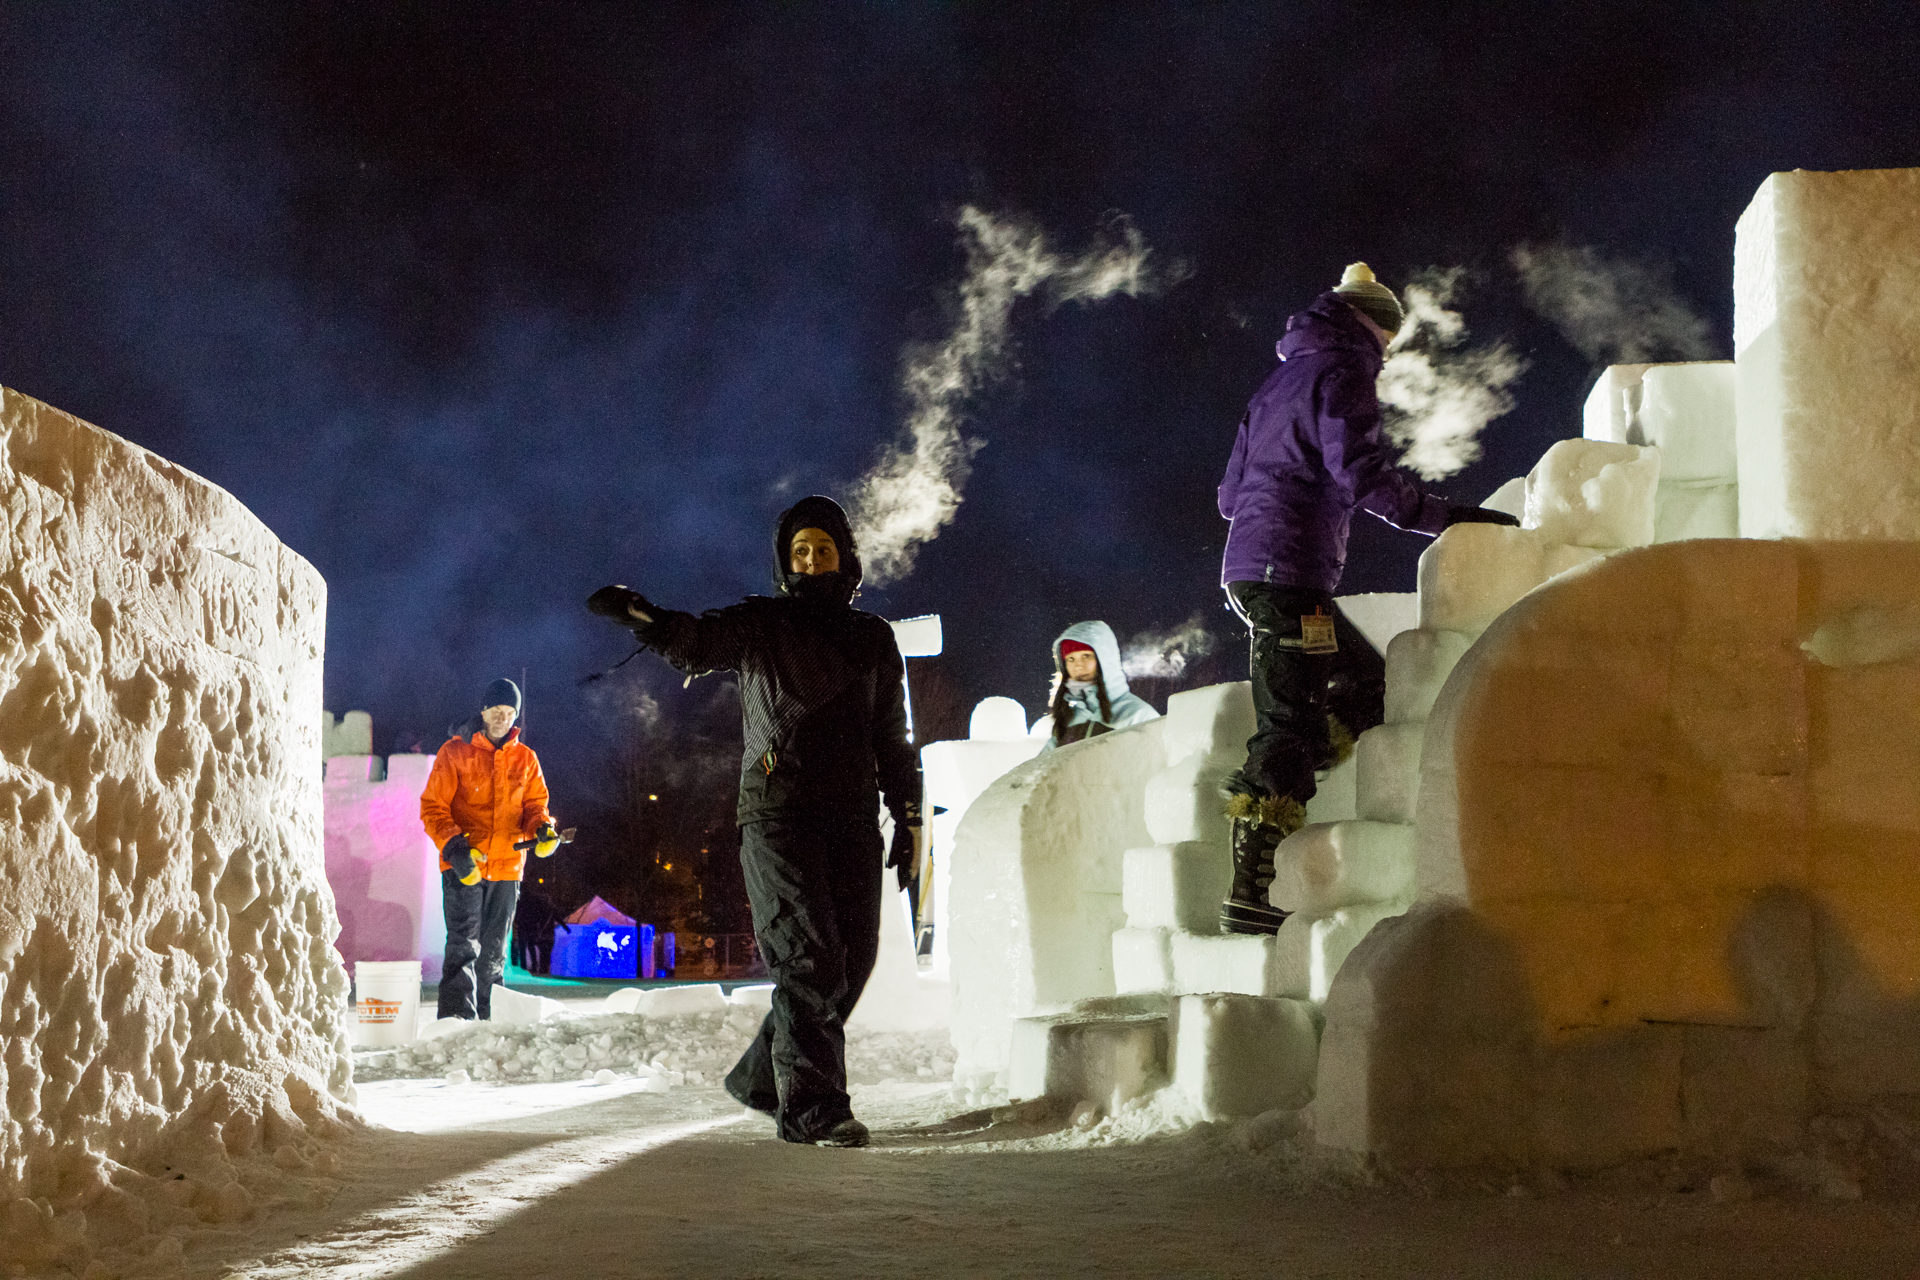 Evening at Ice on Whyte